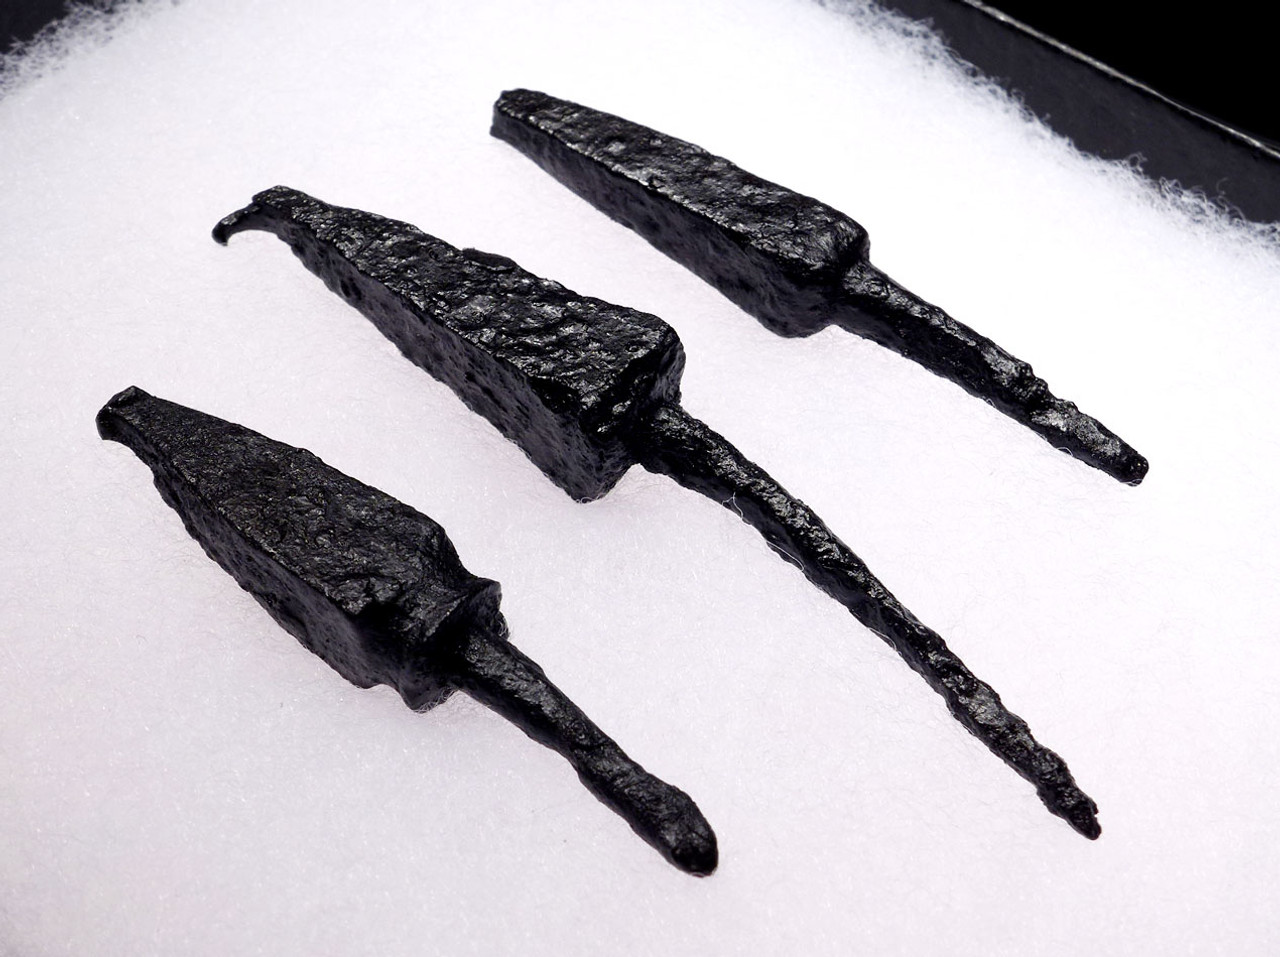 ROMAN BYZANTINE WEAPONS FOR SALE